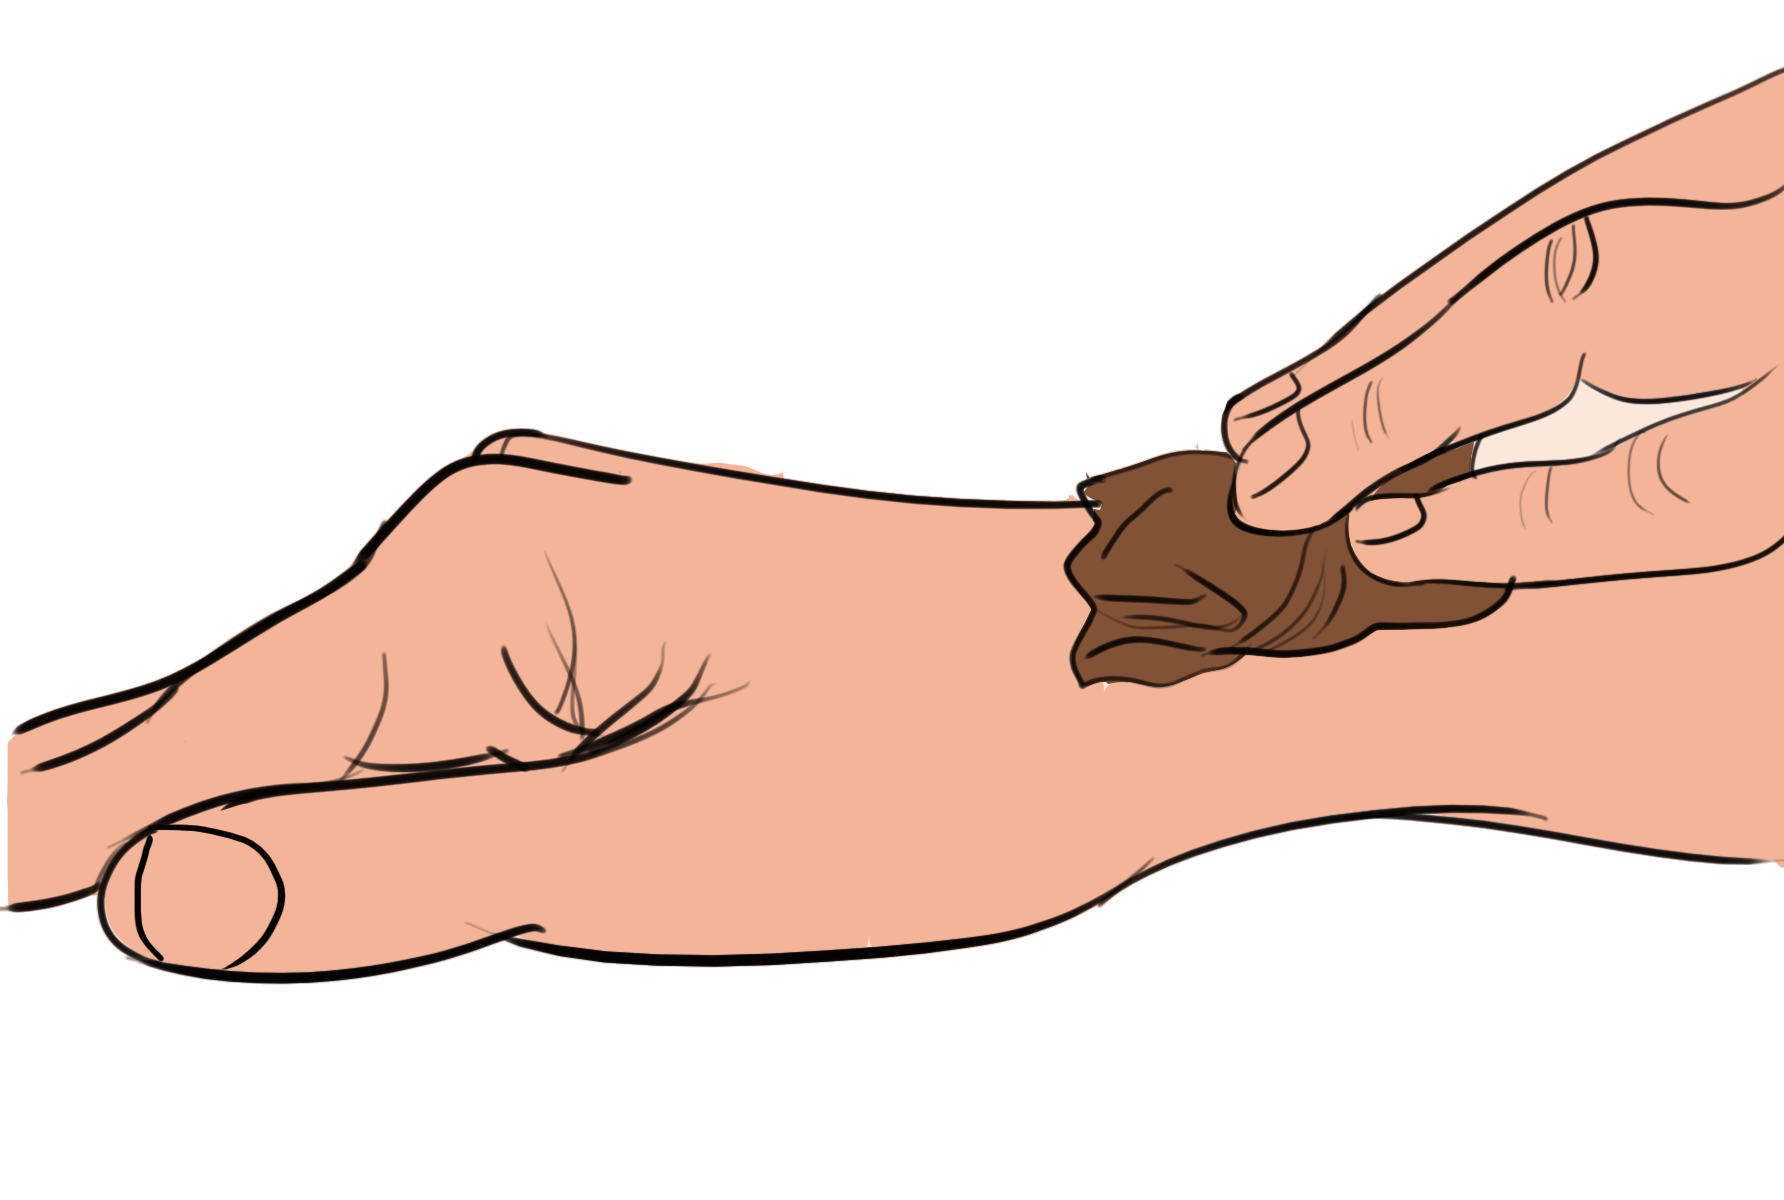 treating ganglion cyst with tea bags - step 3